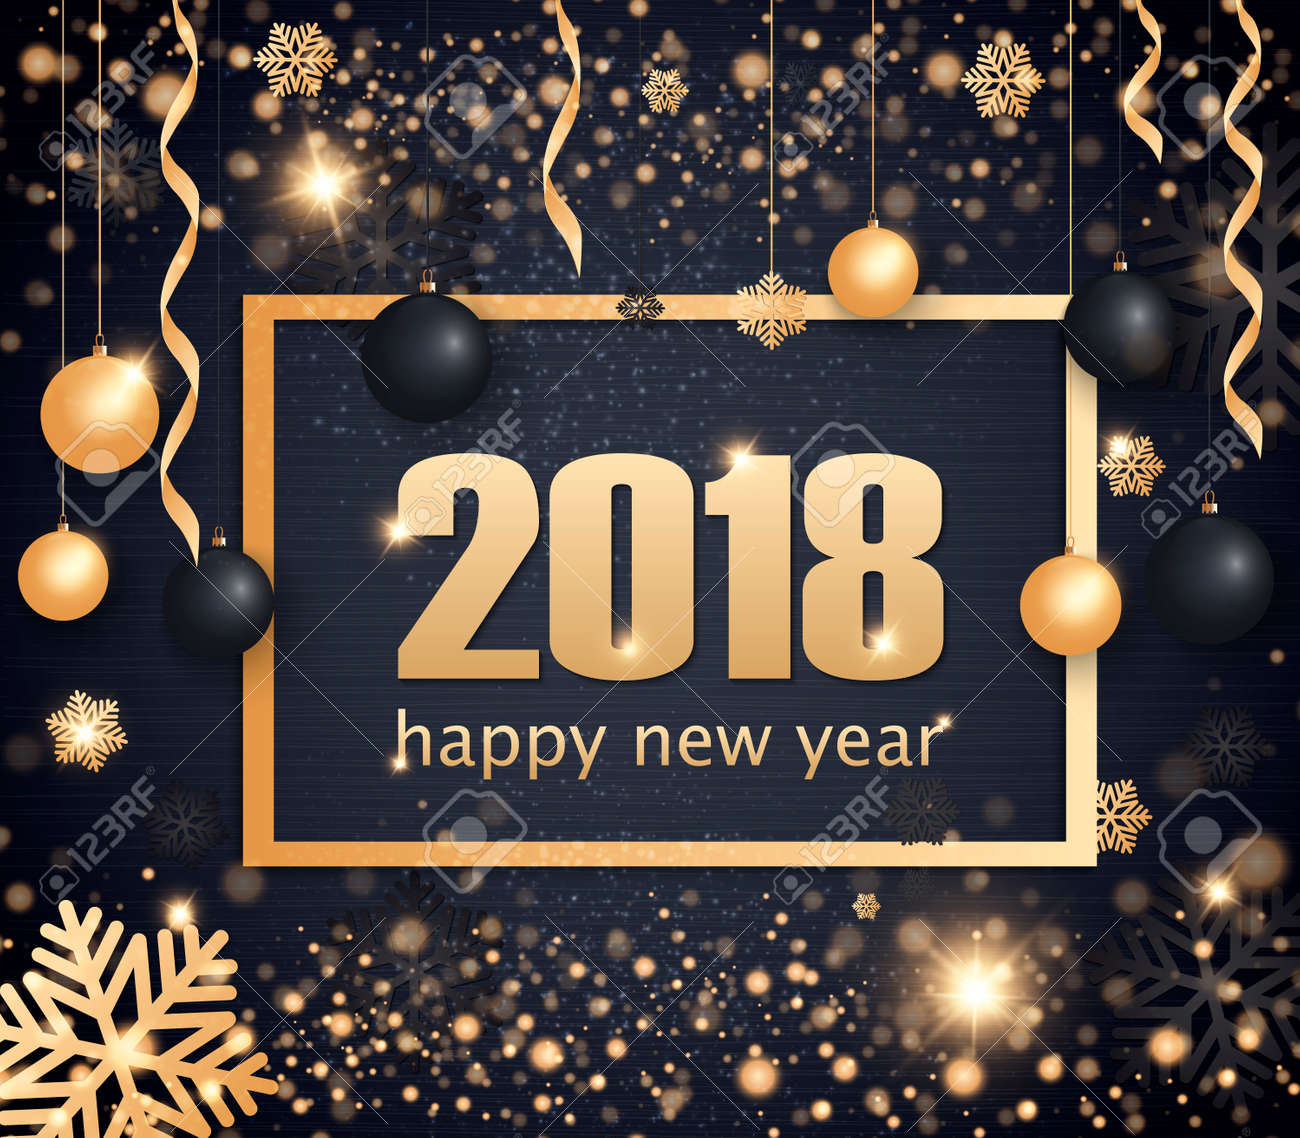 Happy New Year 2018 gold and black color space for text Christmas balls, golden concerts and snowflakes. Golden bokeh, light and ribbons. Vector illustration - 87892061